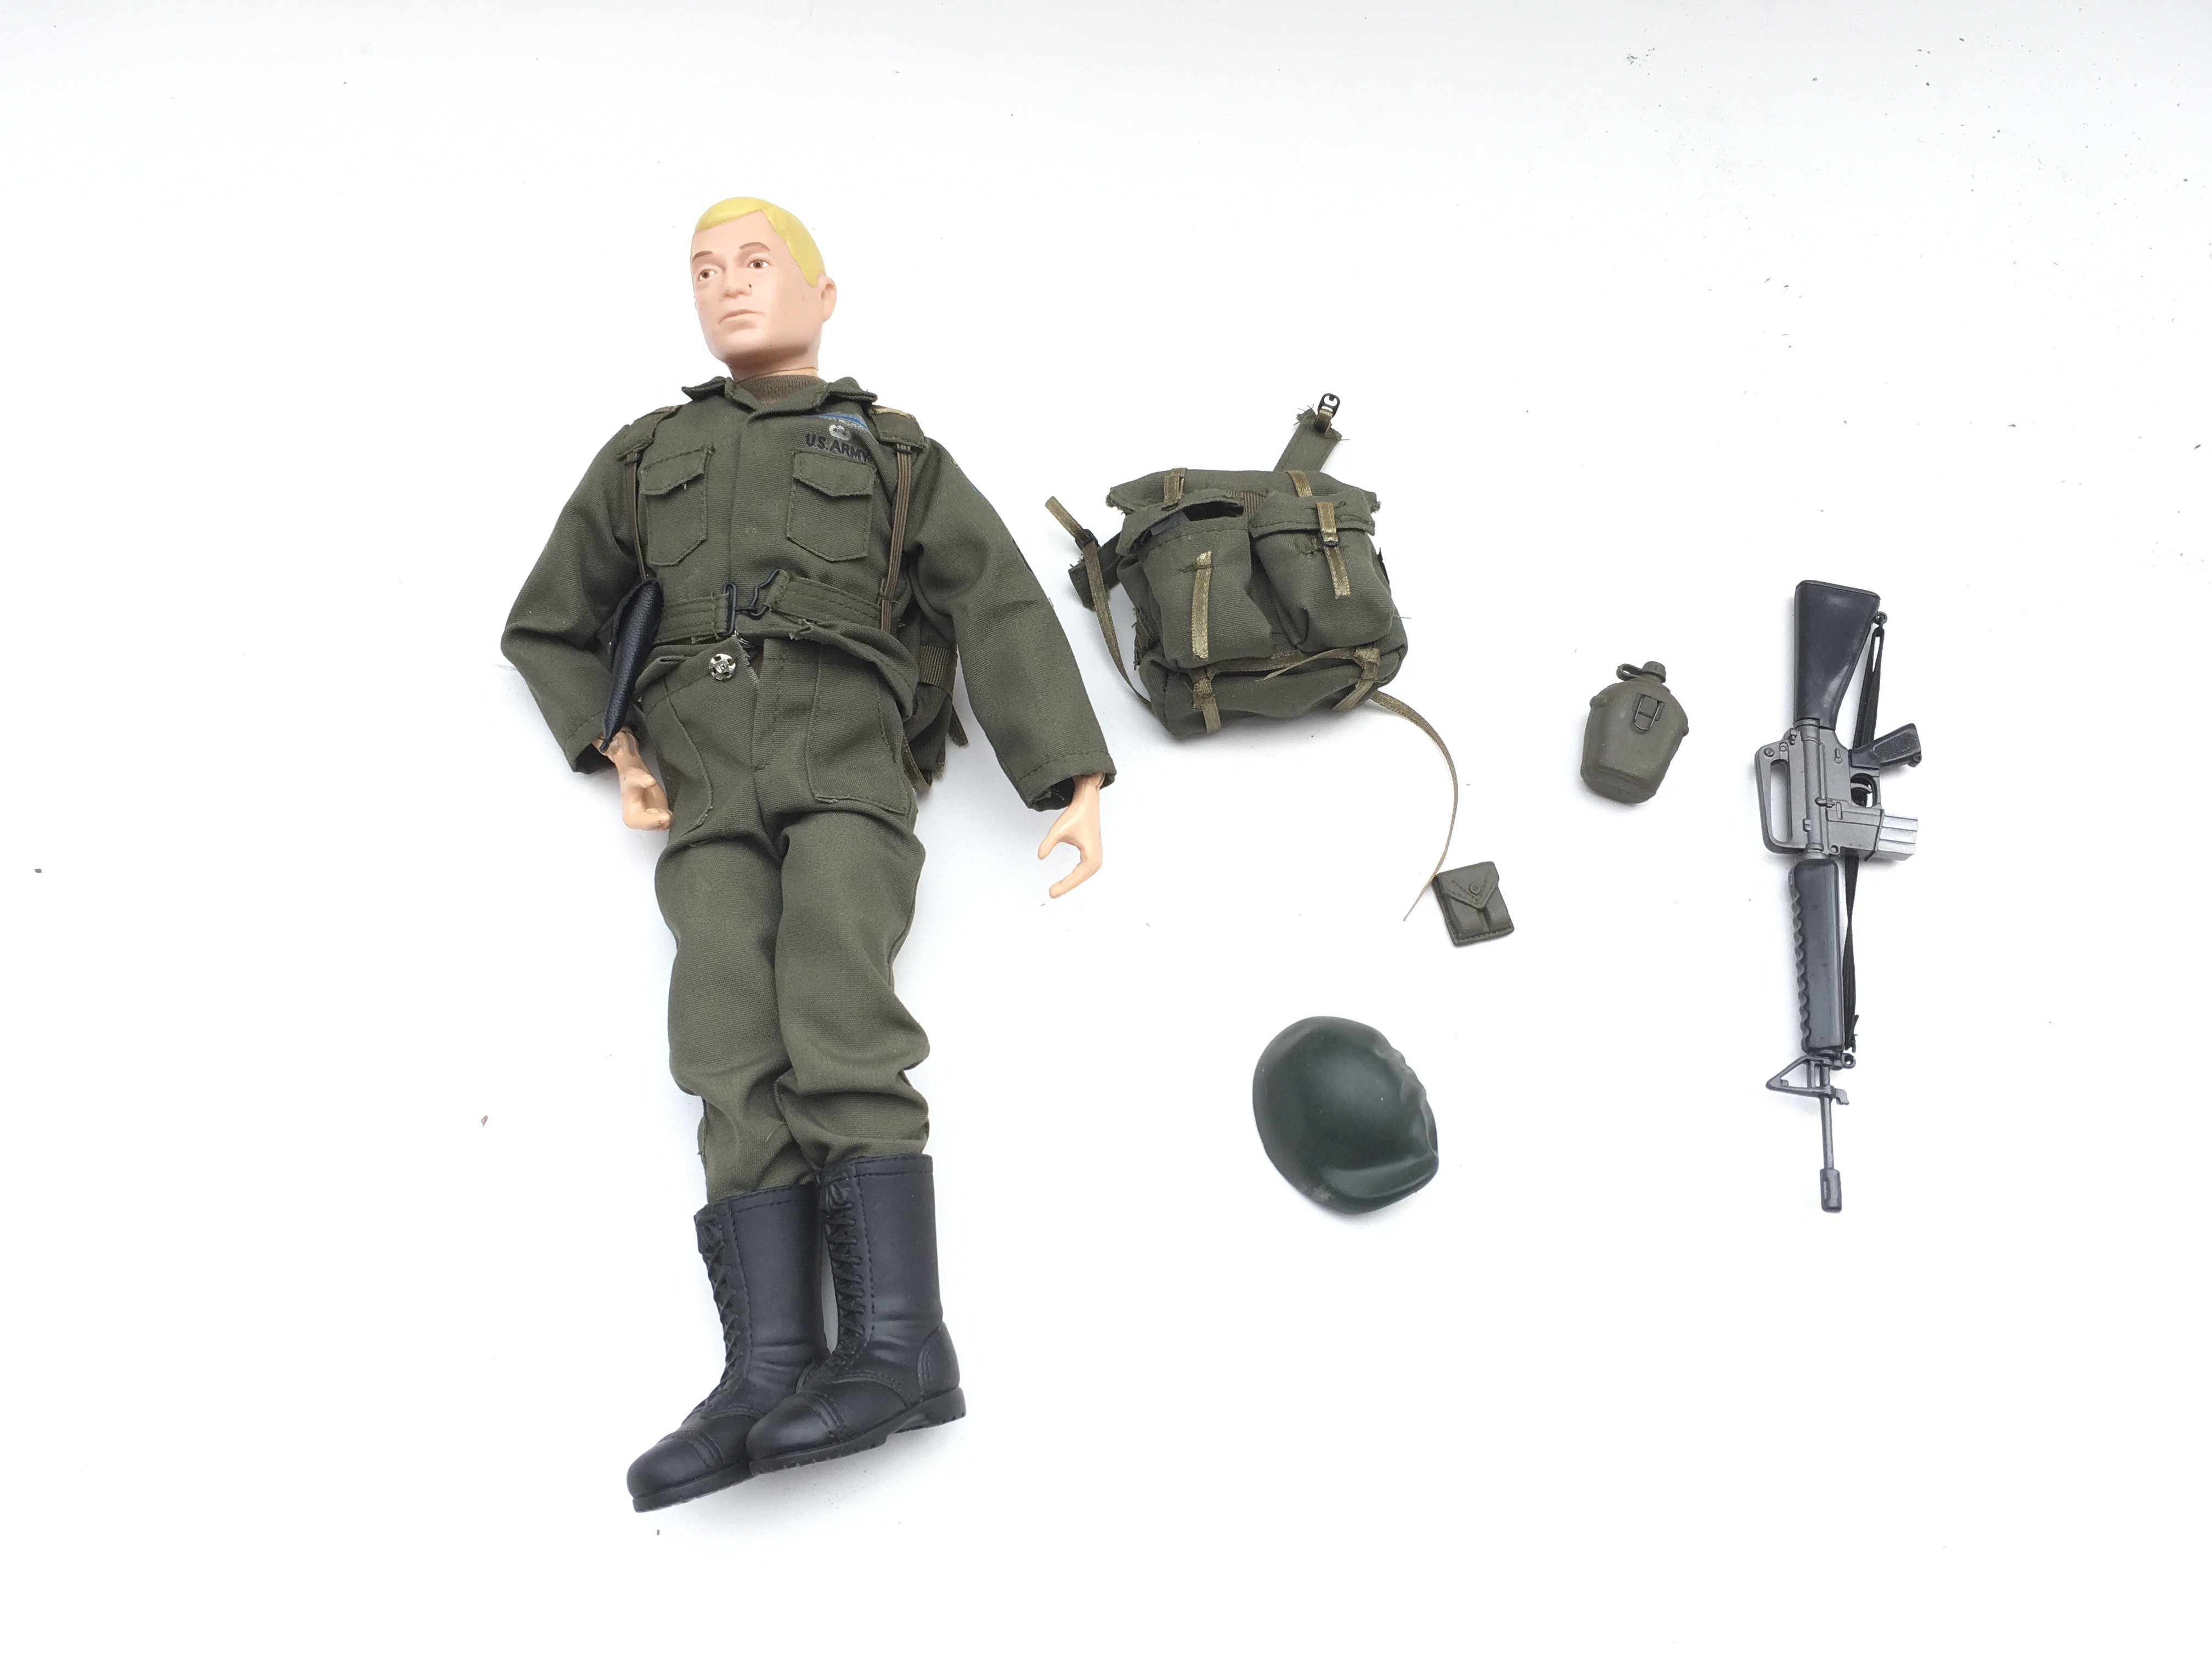 Action figure with accessories.